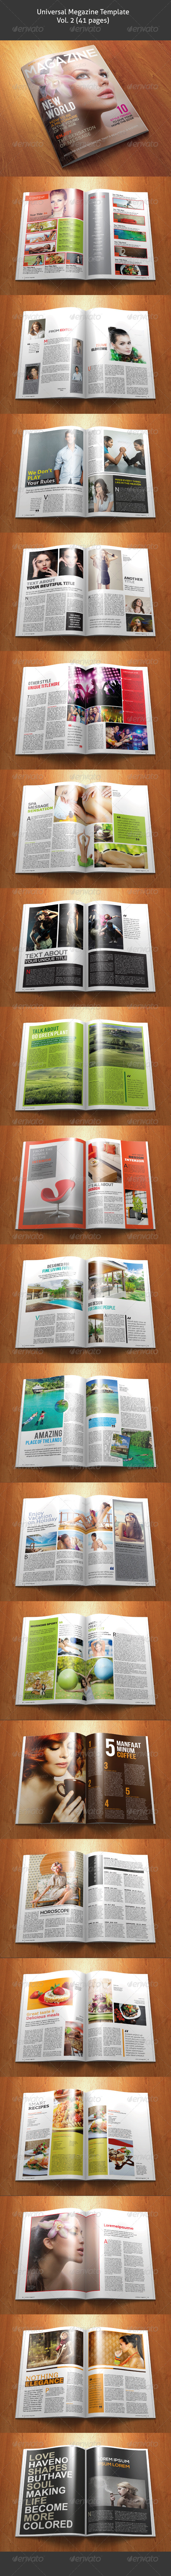 Universal Magazine Template Vol. 02 (41 pages) - Magazines Print Templates